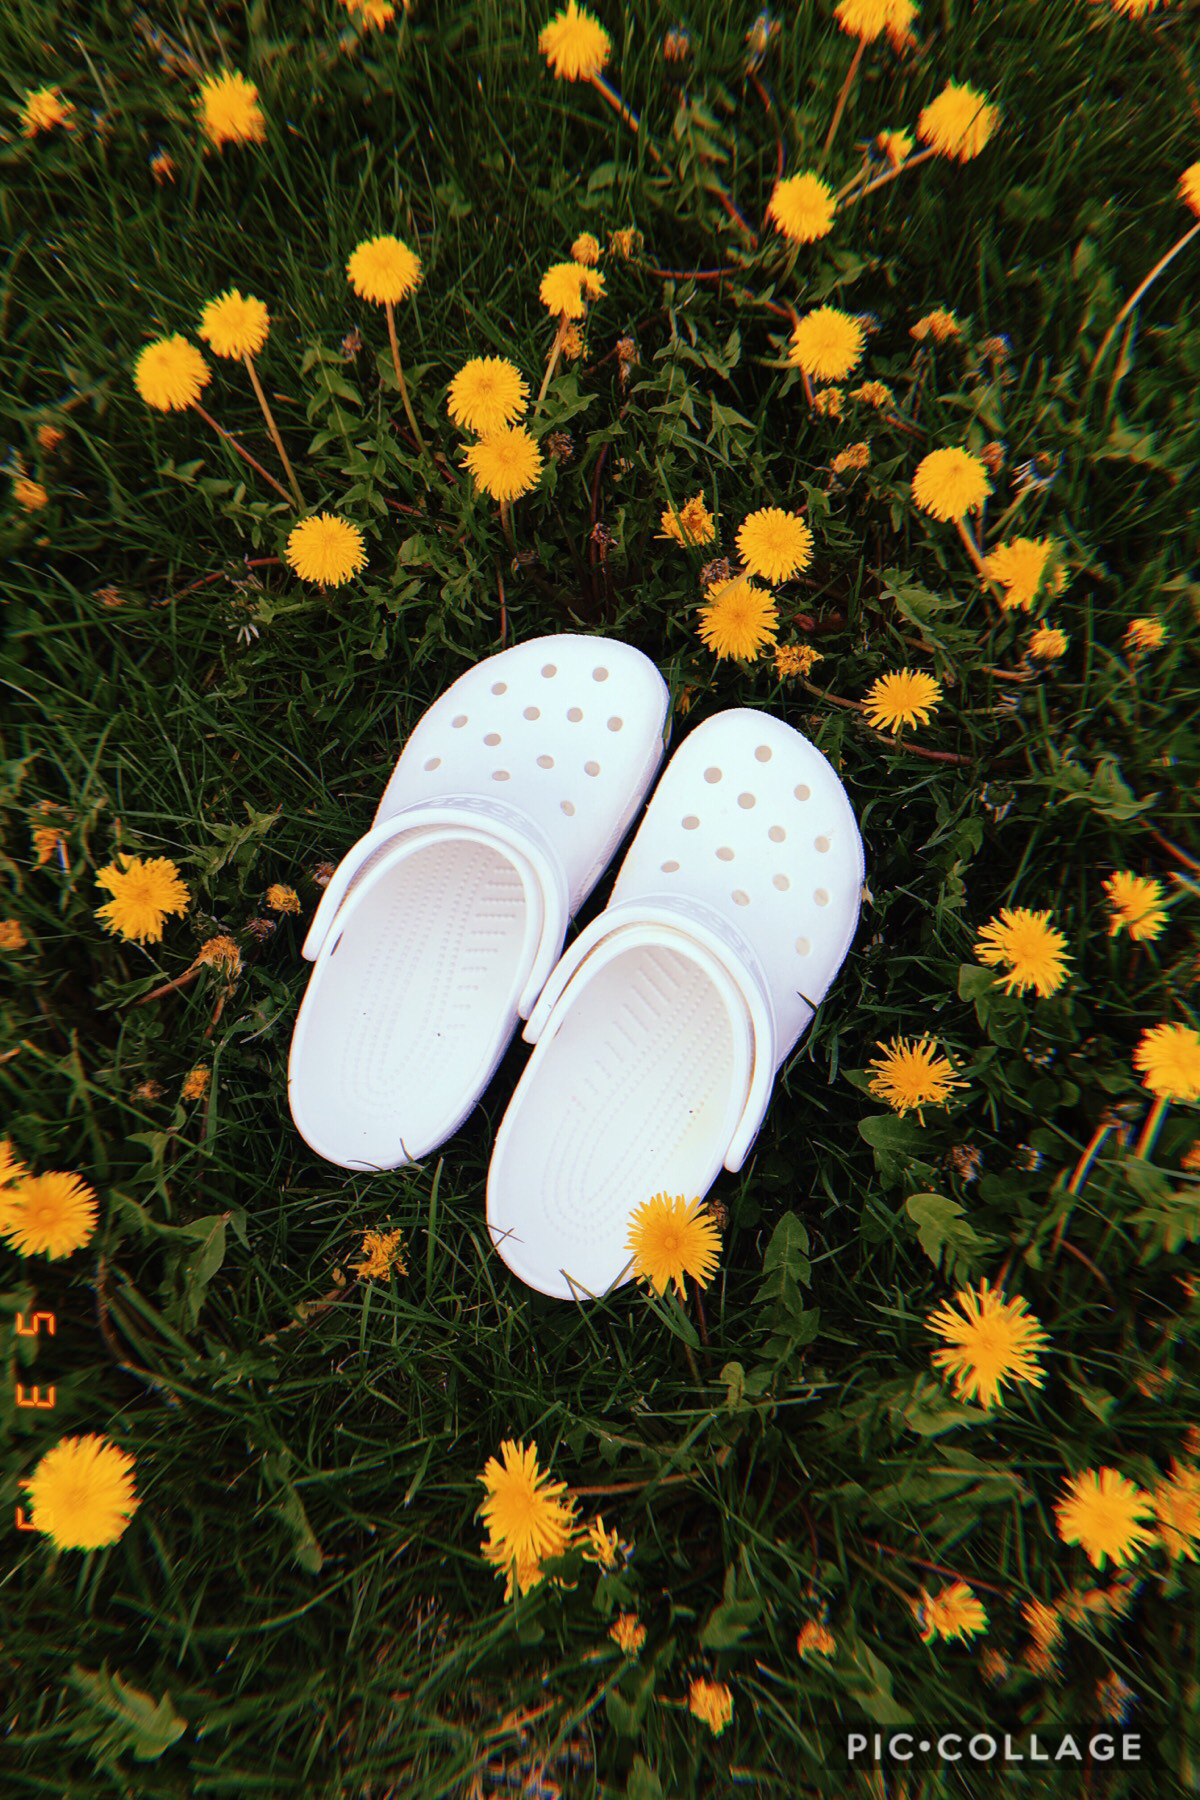 •tApPiTy• (5/3/19) uhm sry i haven't posted for a longgggg time😬 but uh.. I GOT CROCS🤪 anyway, i'll prob just be posting some of my photography for a lil bit ig idk QOTD: who's ur fav youtuber? AOTD: Emma Chamberlain or Cody Ko